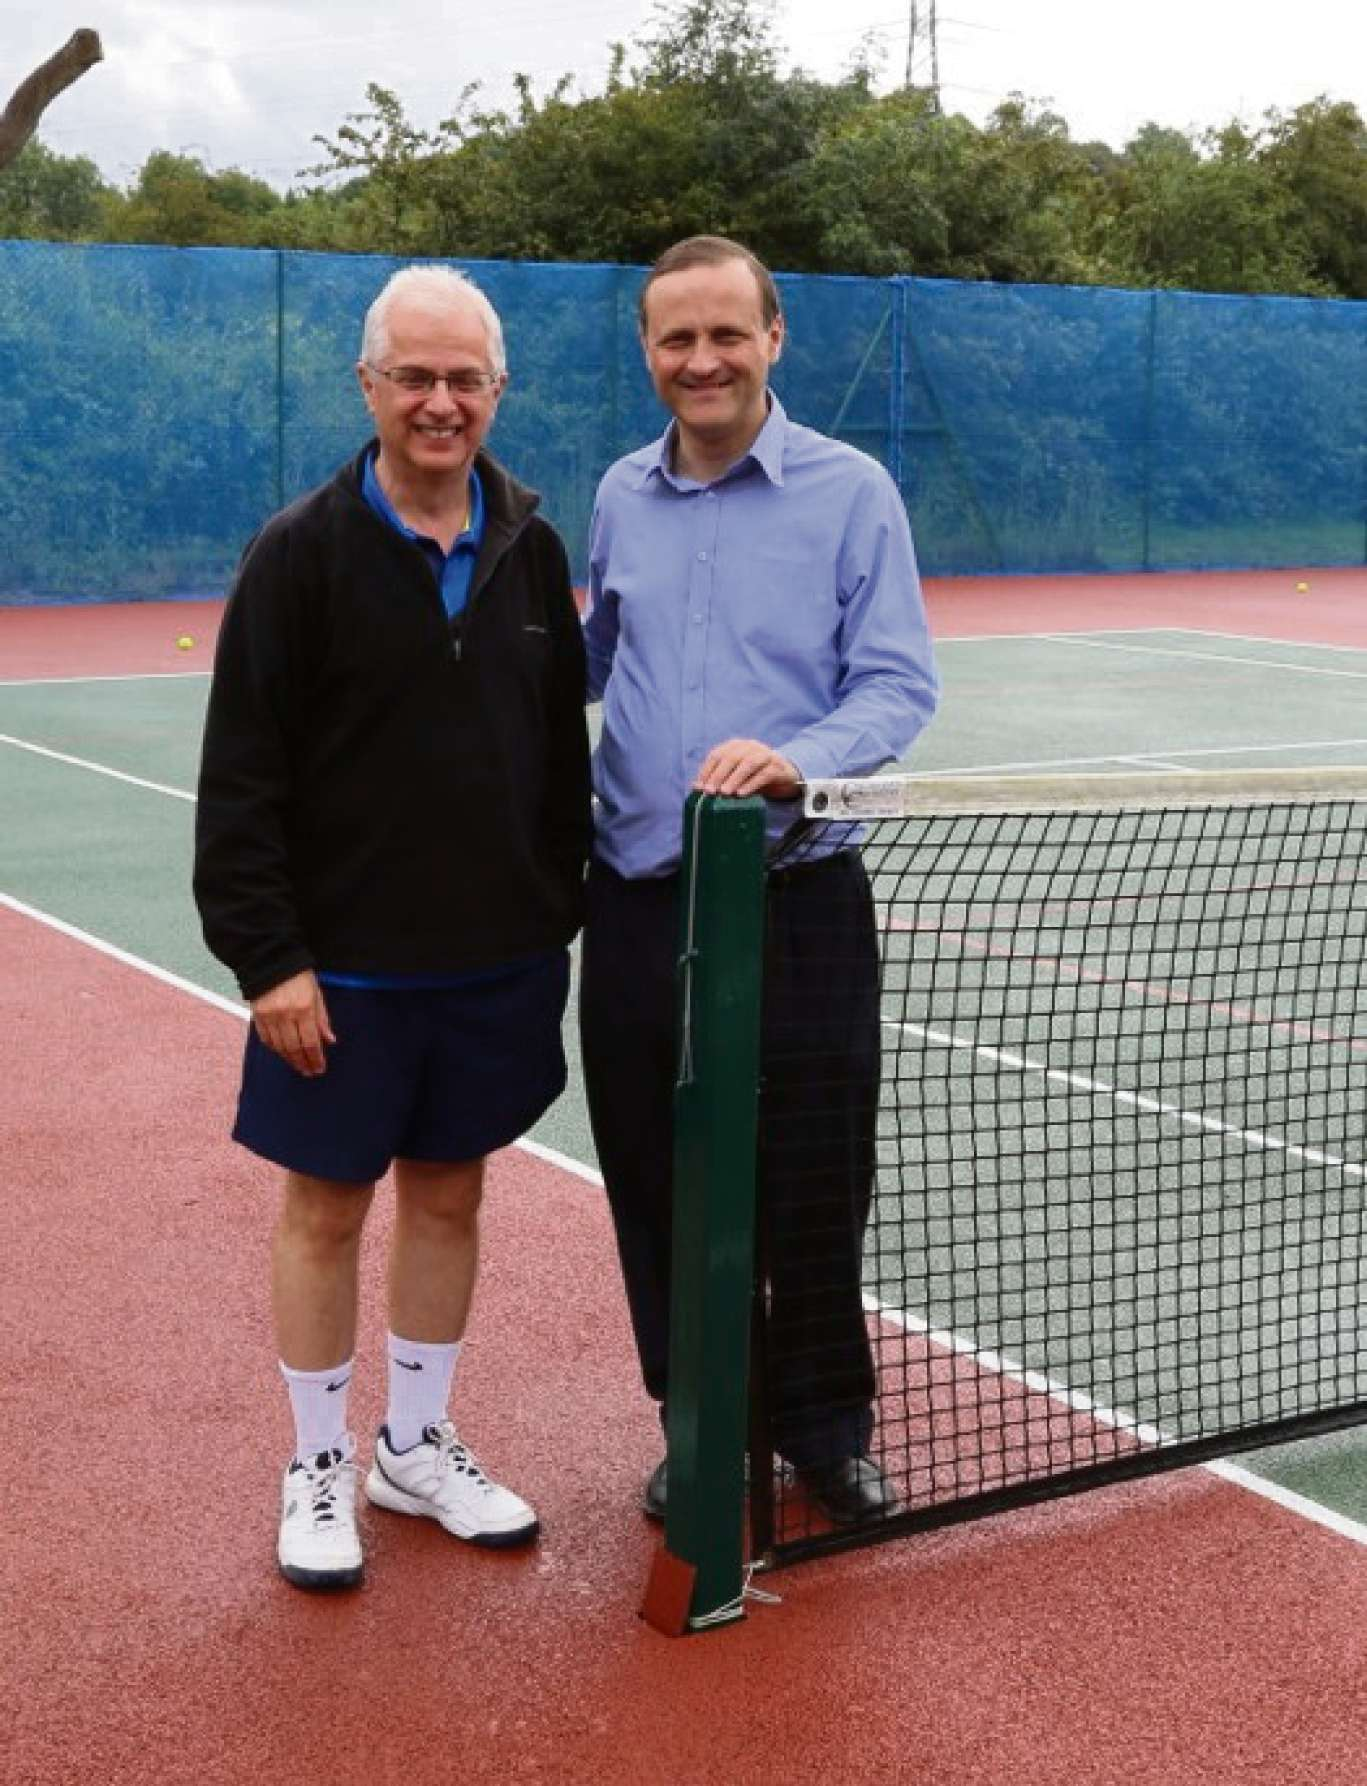 Thornbury and Yate MP Steve Webb with David Attwood, vice chairman of Thornbury Tennis Club, at the club's open day  (7677992)